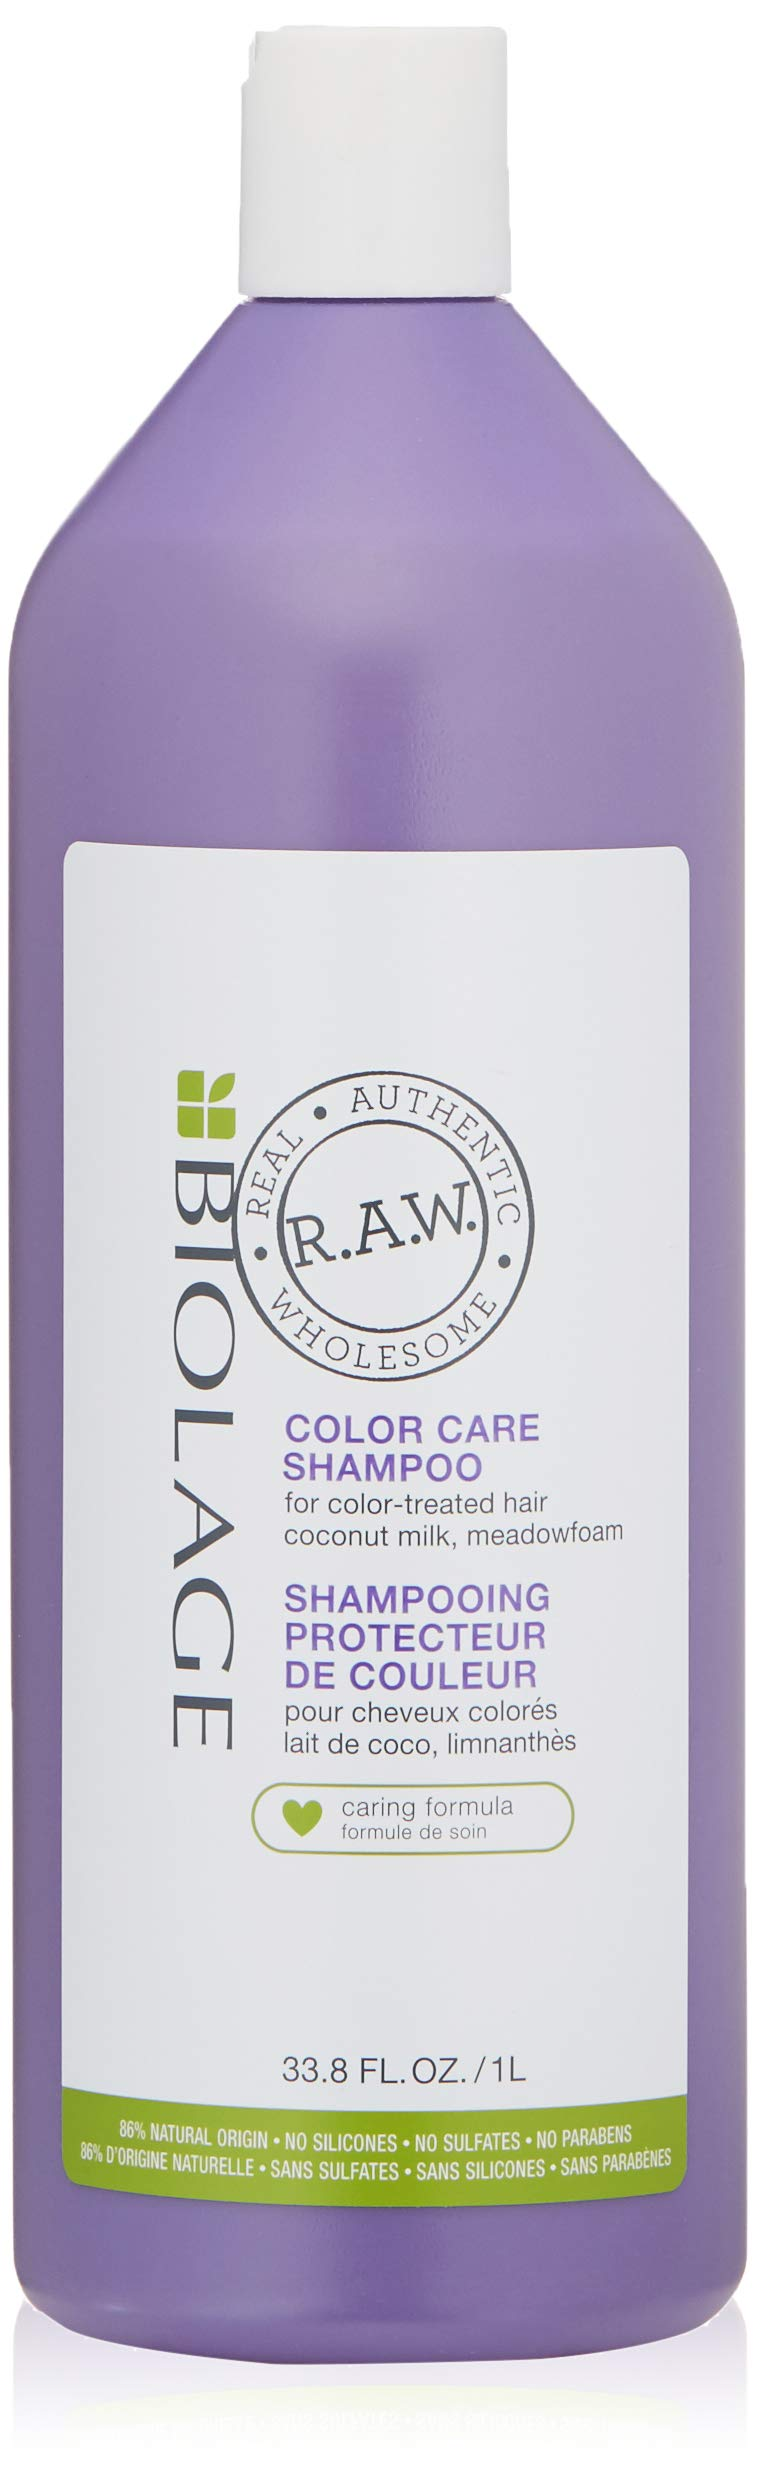 BIOLAGE R.A.W. Color Care Shampoo for Color Treated Hair with Coconut Milk and Meadowfoam, Sulfate Free, 33.8 fl. oz. by BIOLAGE